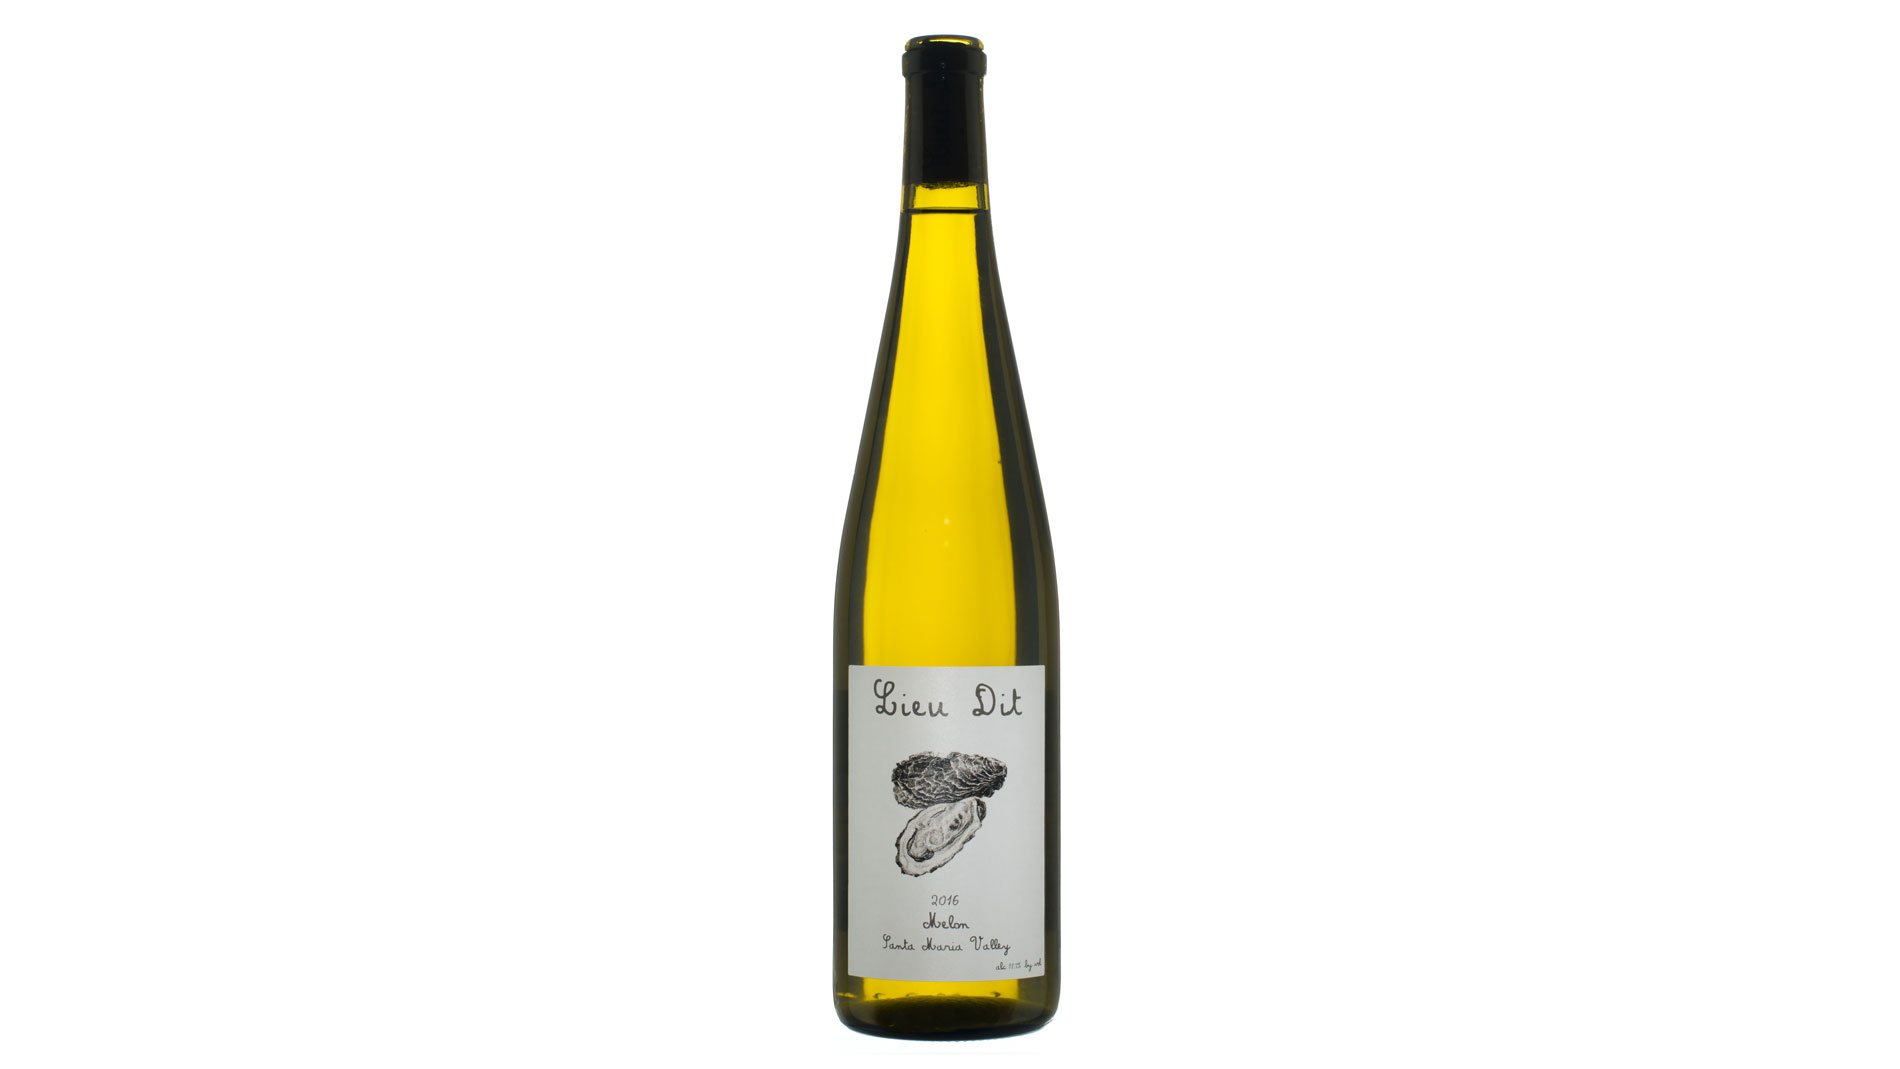 2016 Lieu Dit Santa Maria Valley Melon